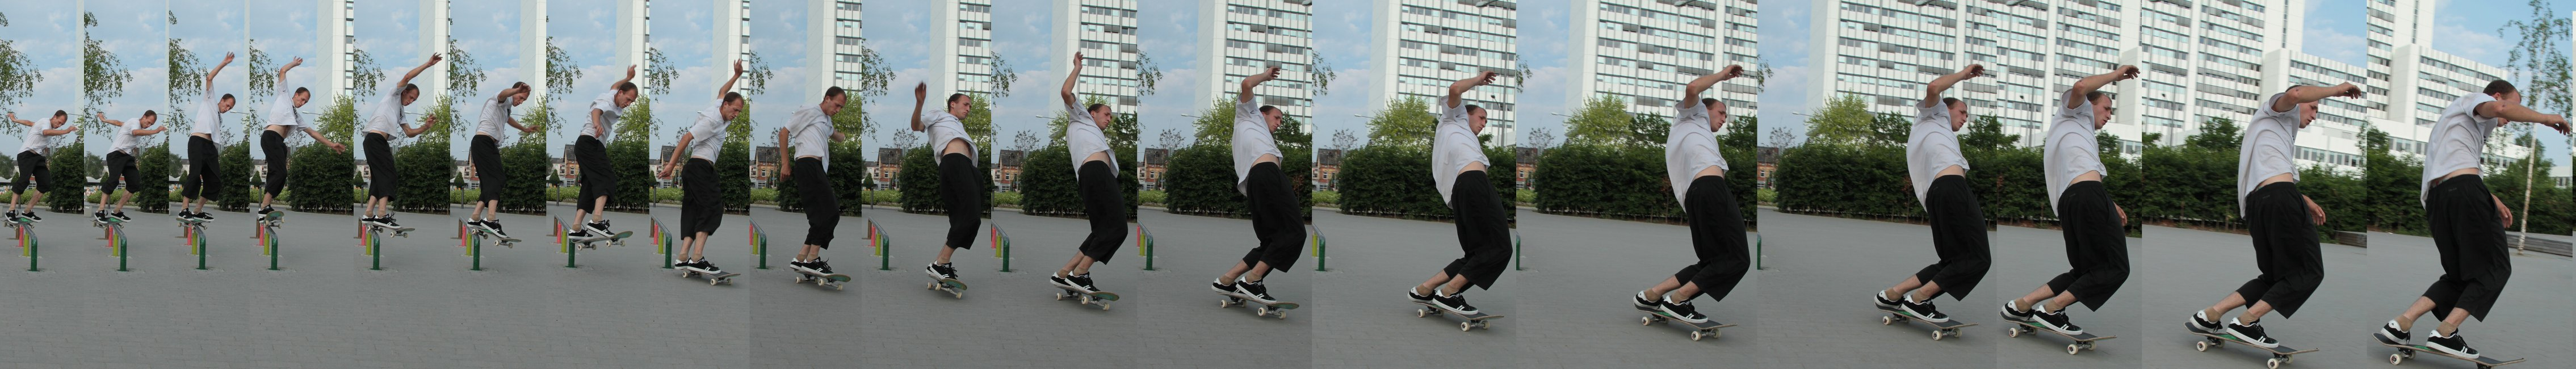 boardjunkie Tim Cabalo - BS Feeble to BS Smith